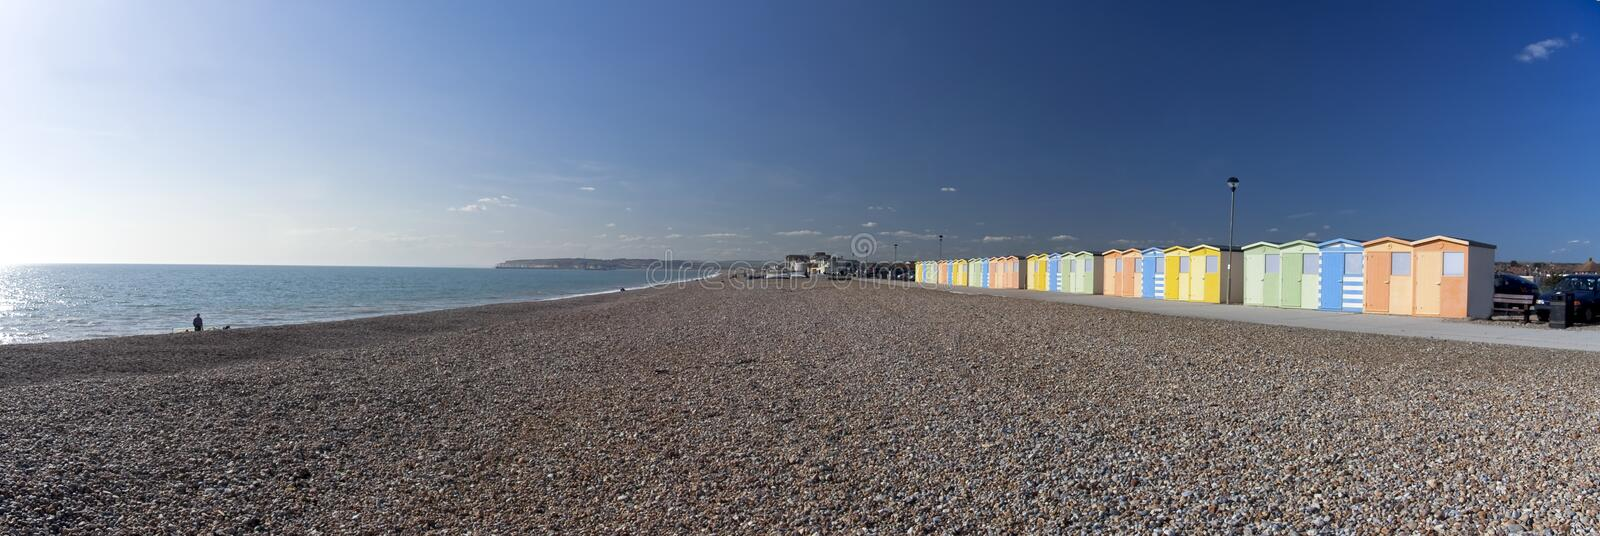 Beach huts seaford head sussex england. Panoramic image of the beach at seaford head near newhaven in east sussex with row of colorful beach huts royalty free stock photography